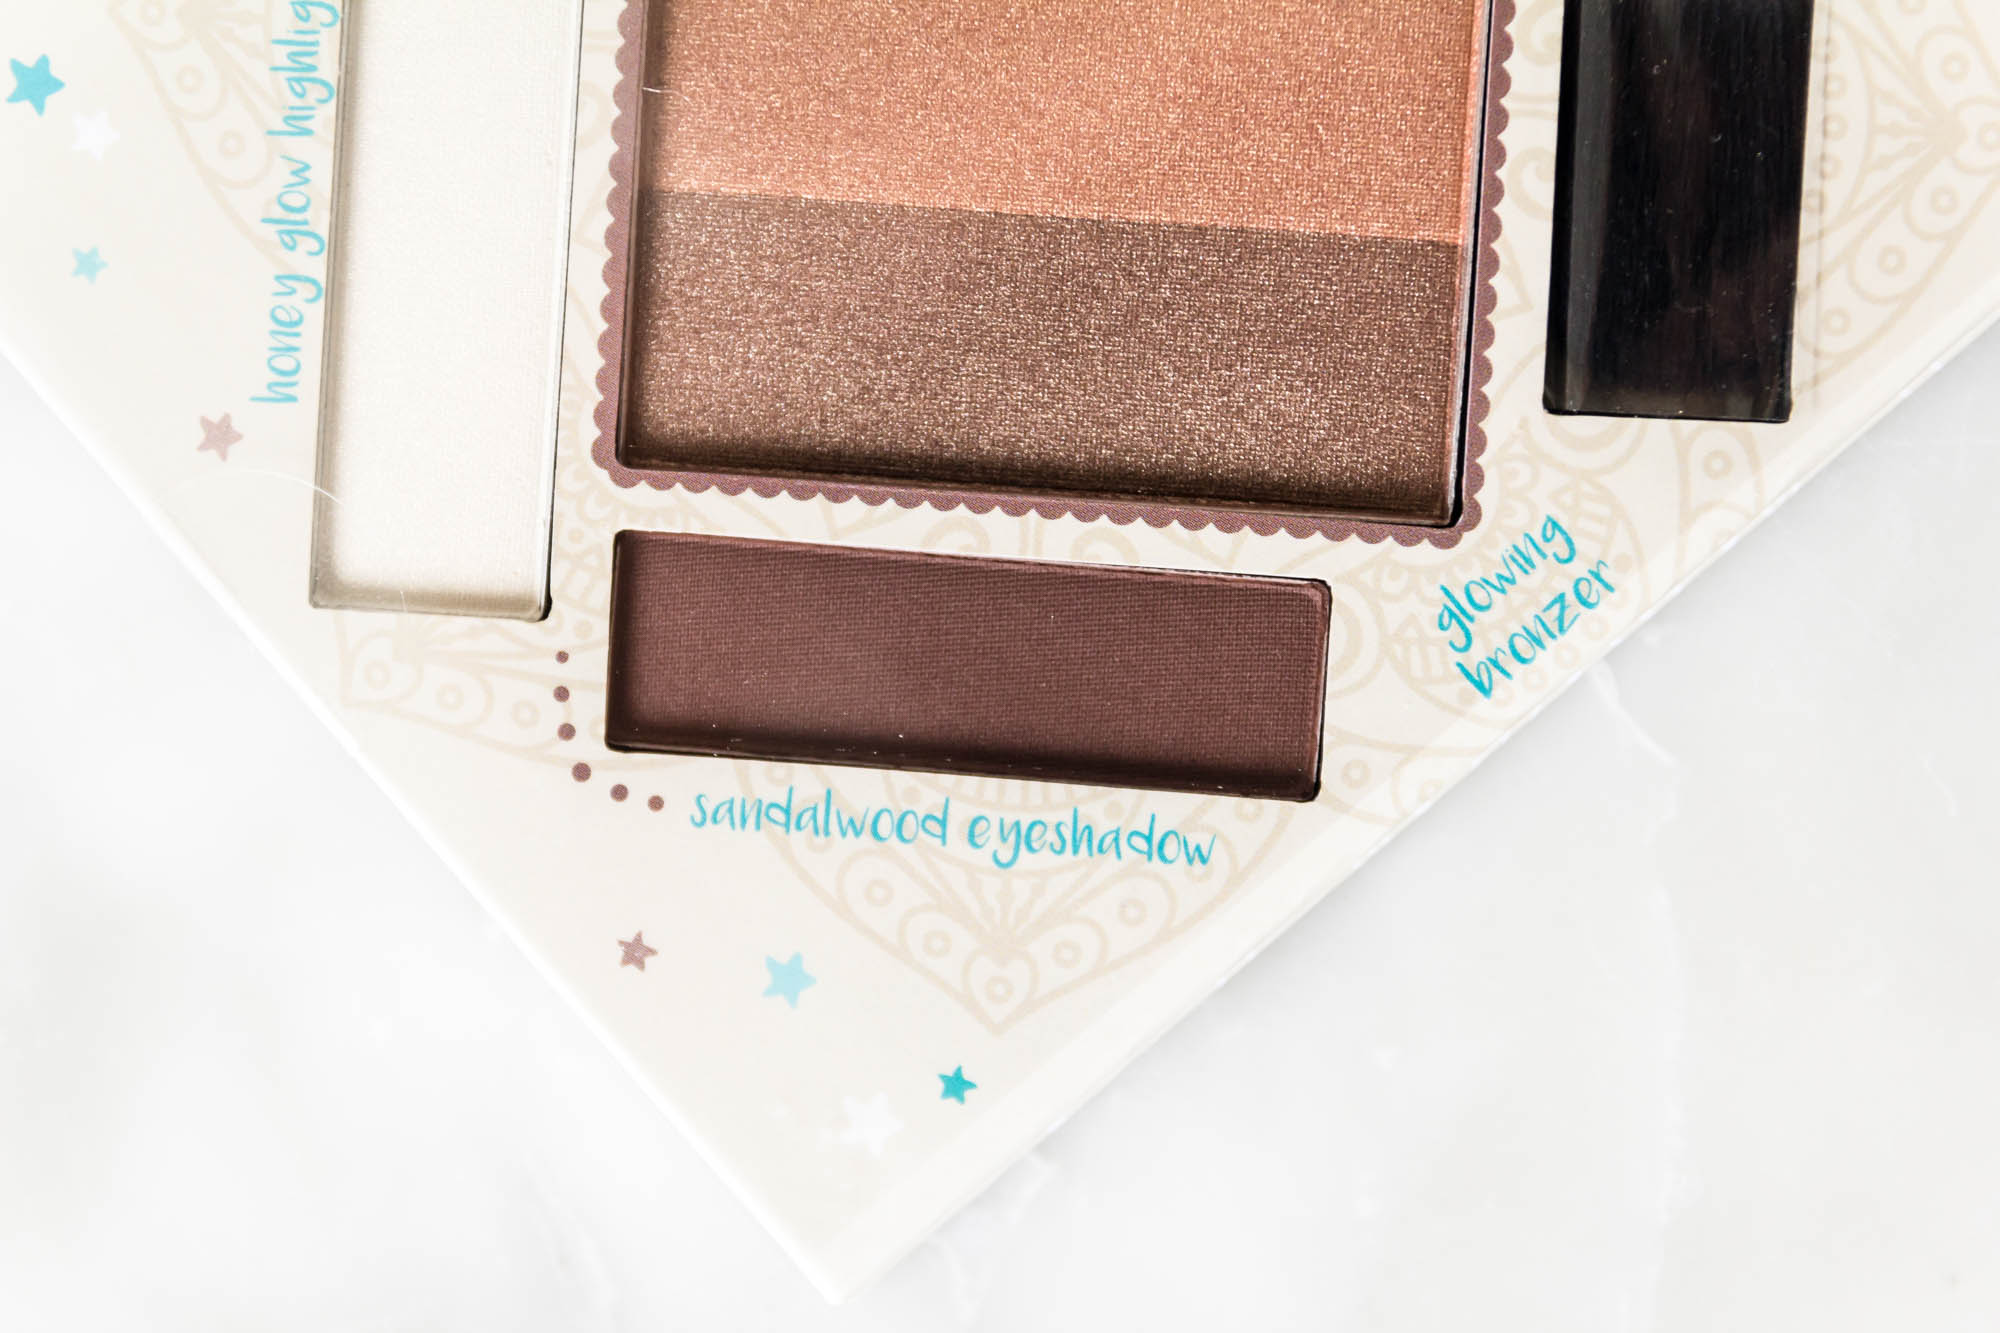 essence cosmetics the glow must go on bronzing and highlighting palette